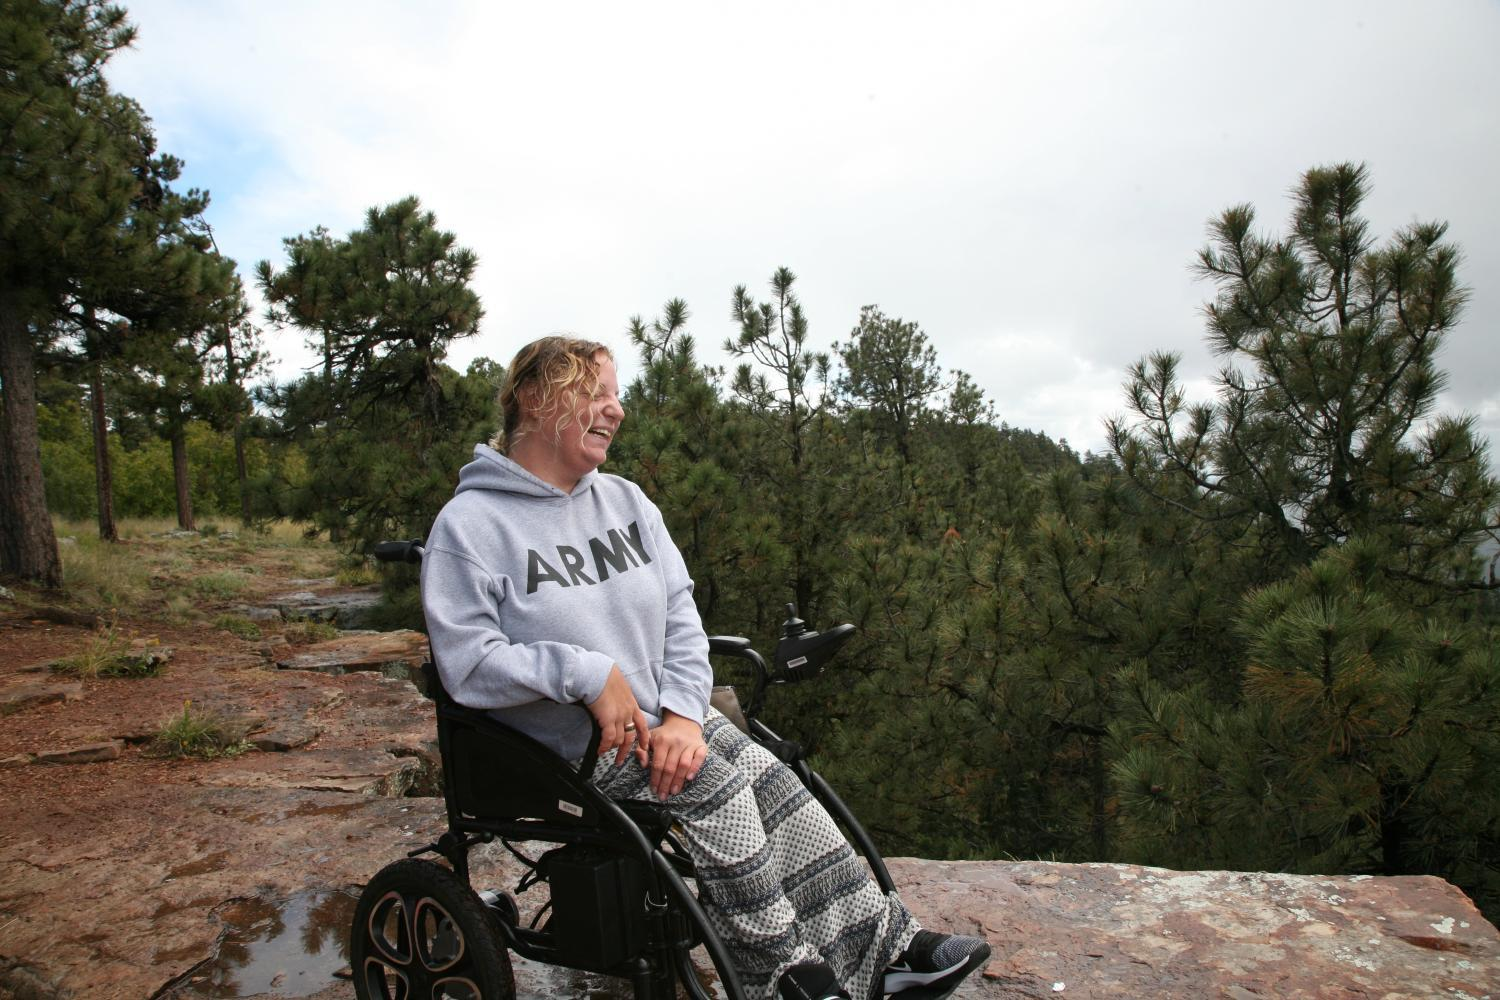 A woman who uses a manual wheelchair is outside near the edge of a cliff. There are many pine trees in the background. She smiles as she looks at the view.